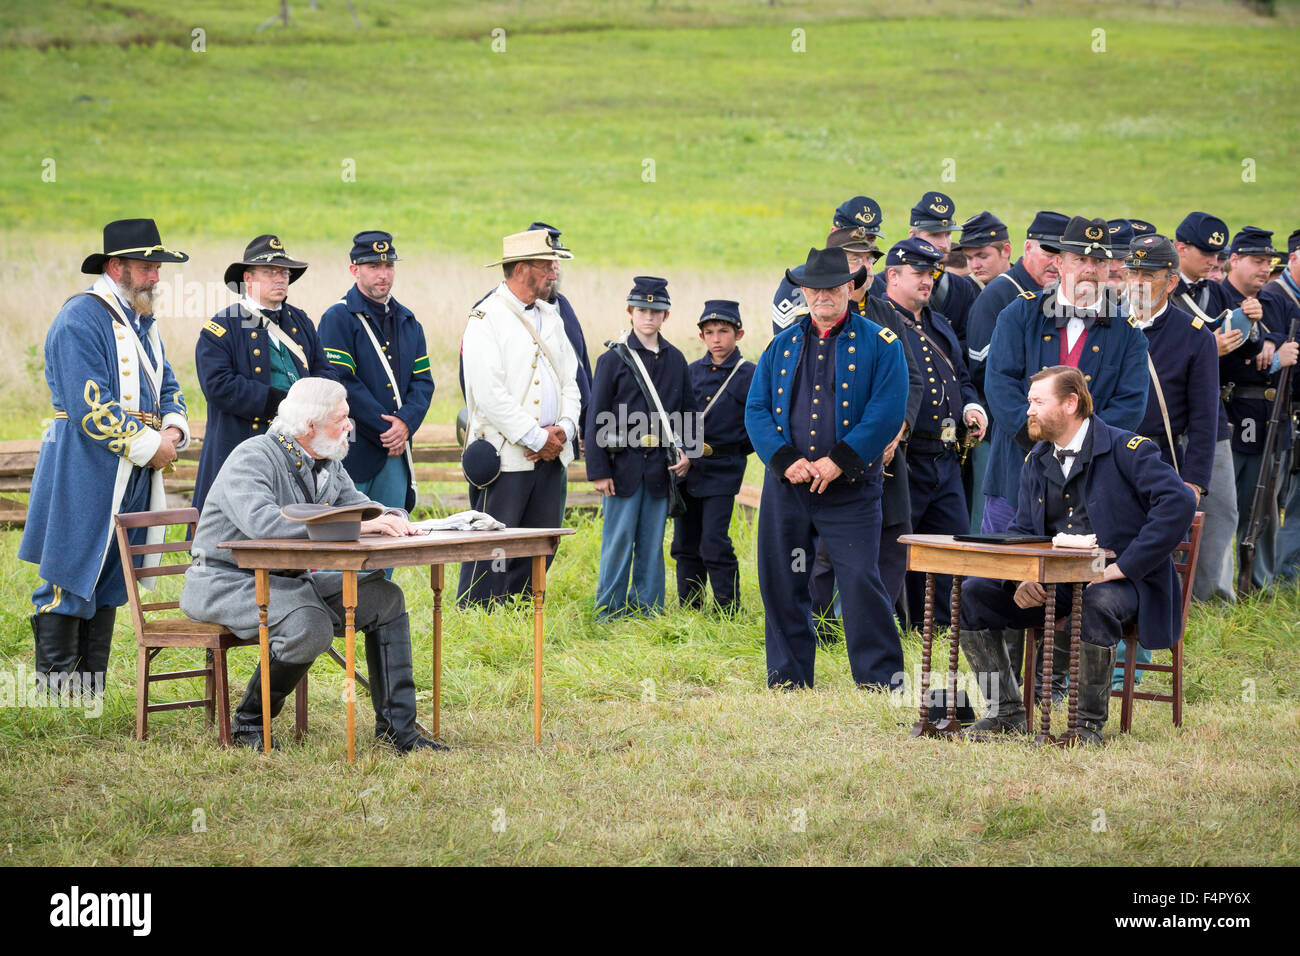 Union and confederate soldiers reenact the Battle of Gettysburg. - Stock Image